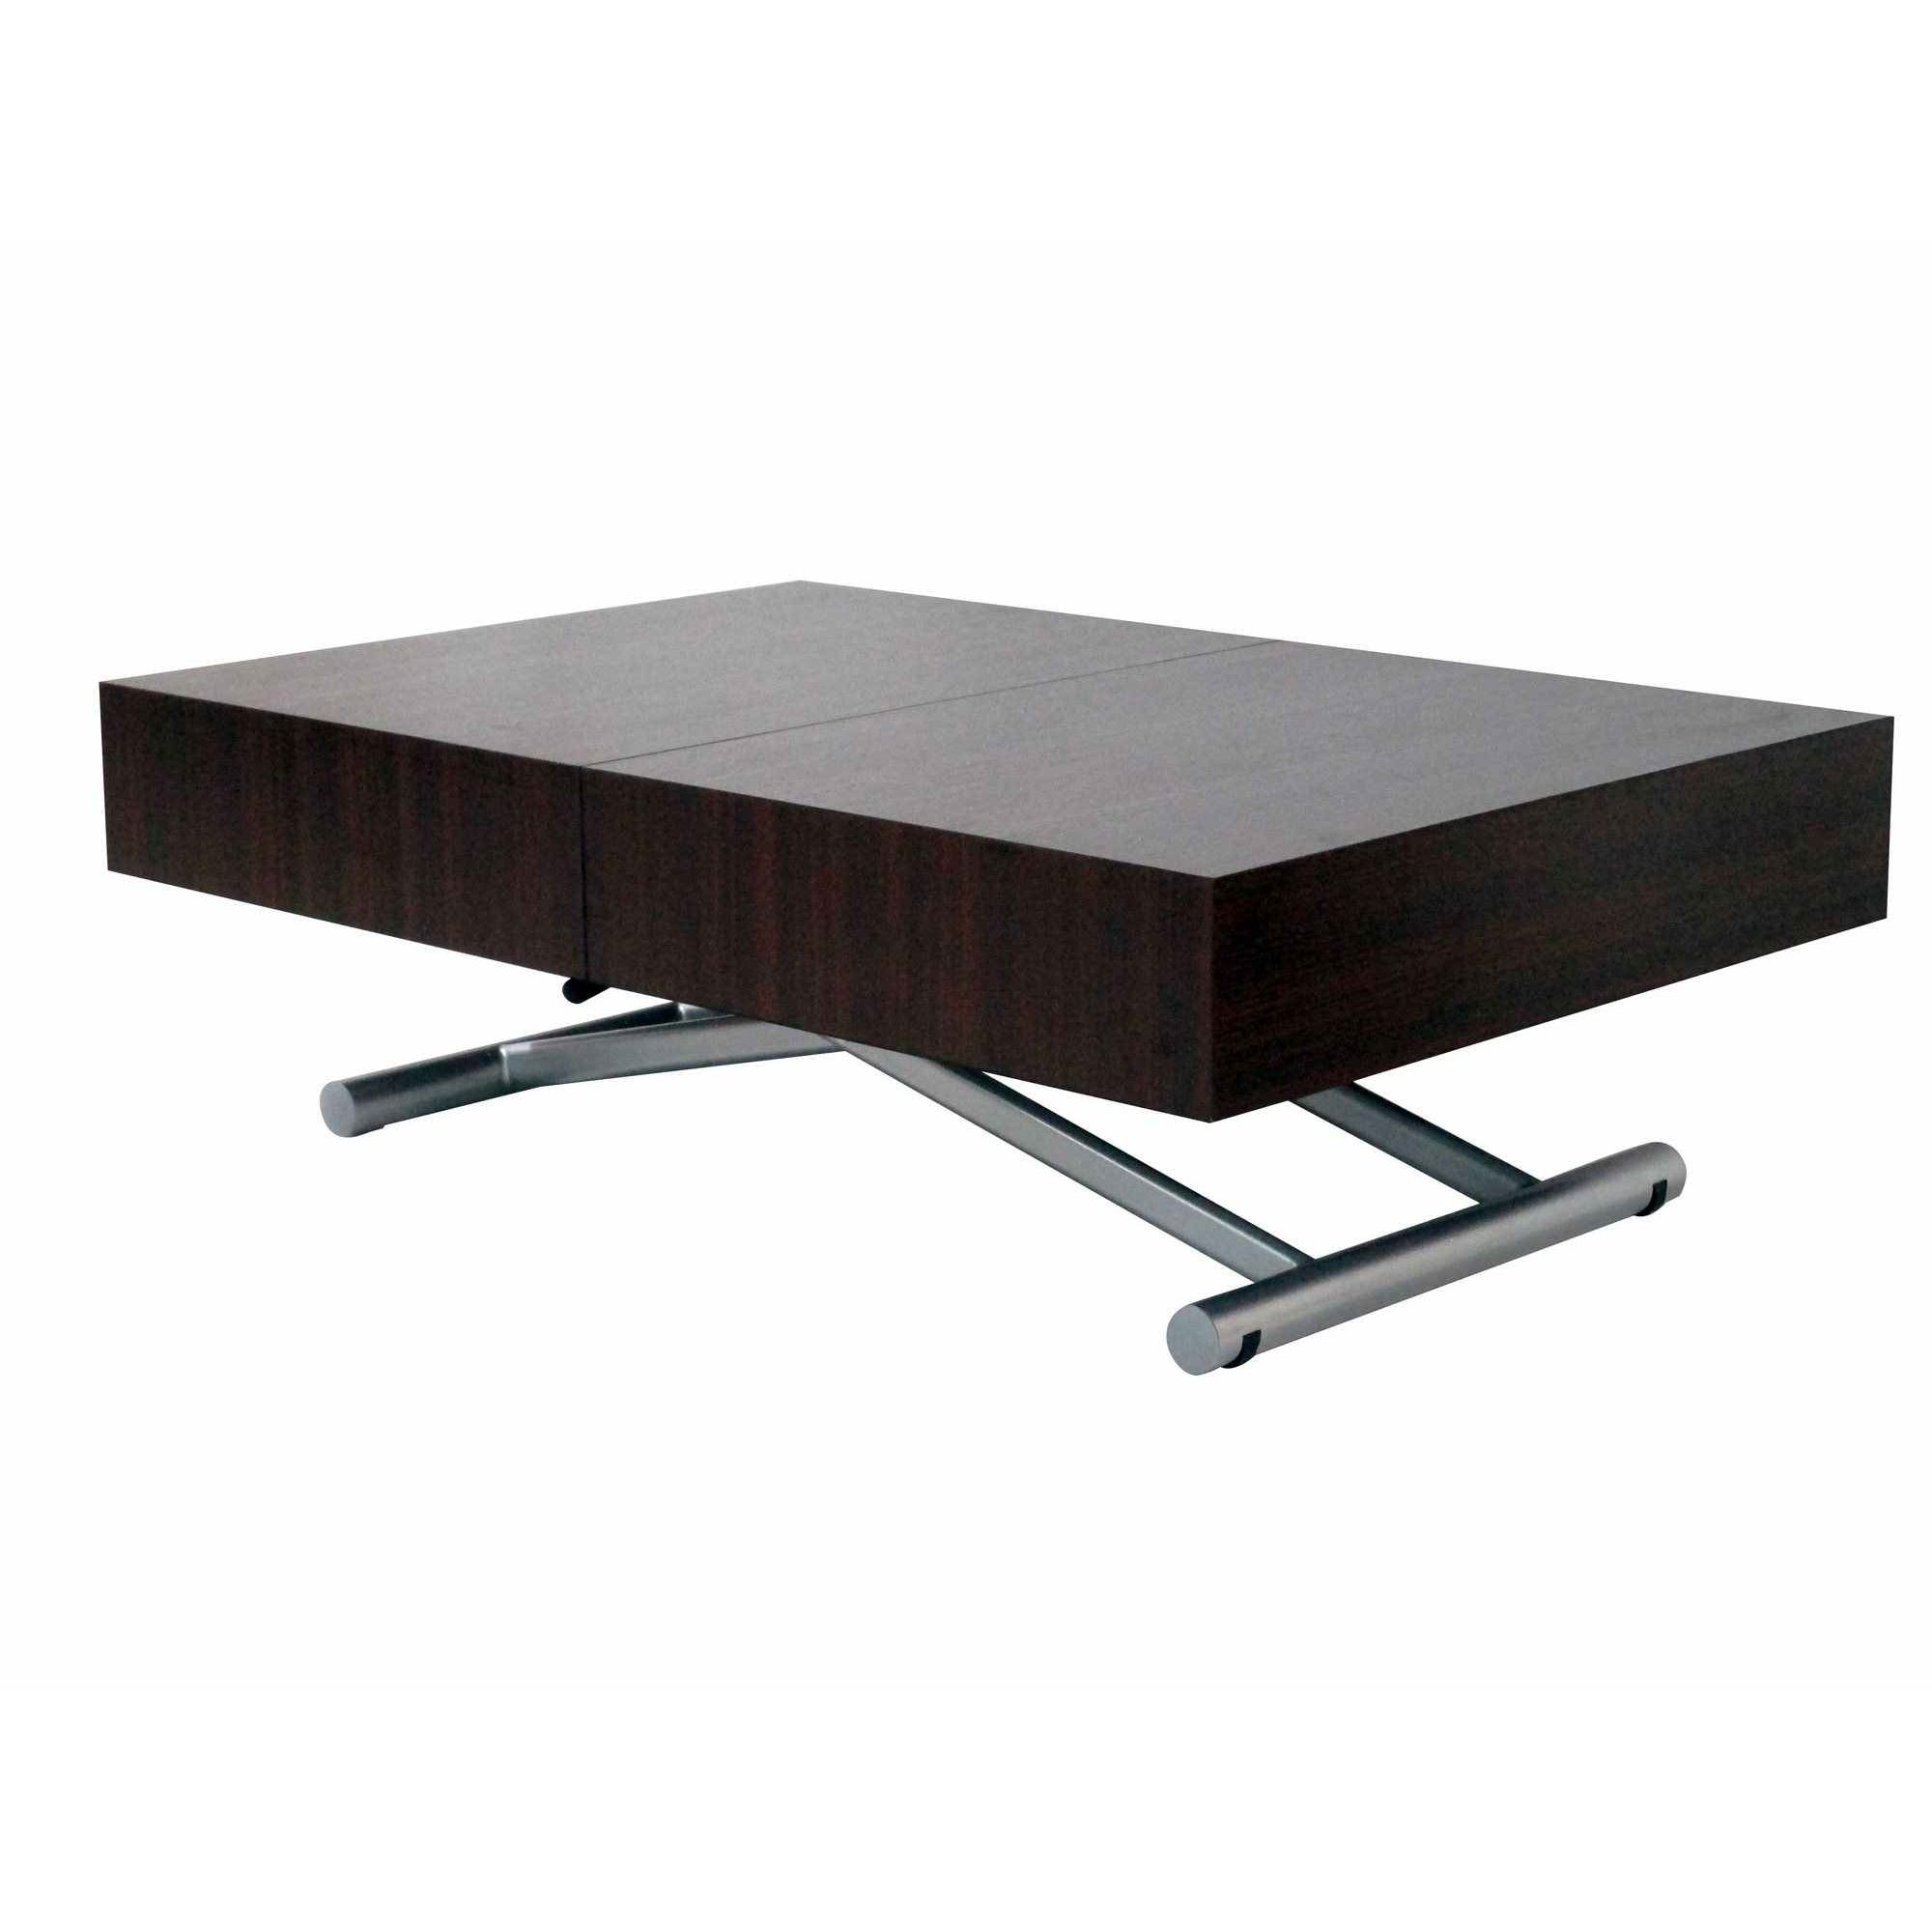 deco in paris table basse relevable extensible wenge. Black Bedroom Furniture Sets. Home Design Ideas